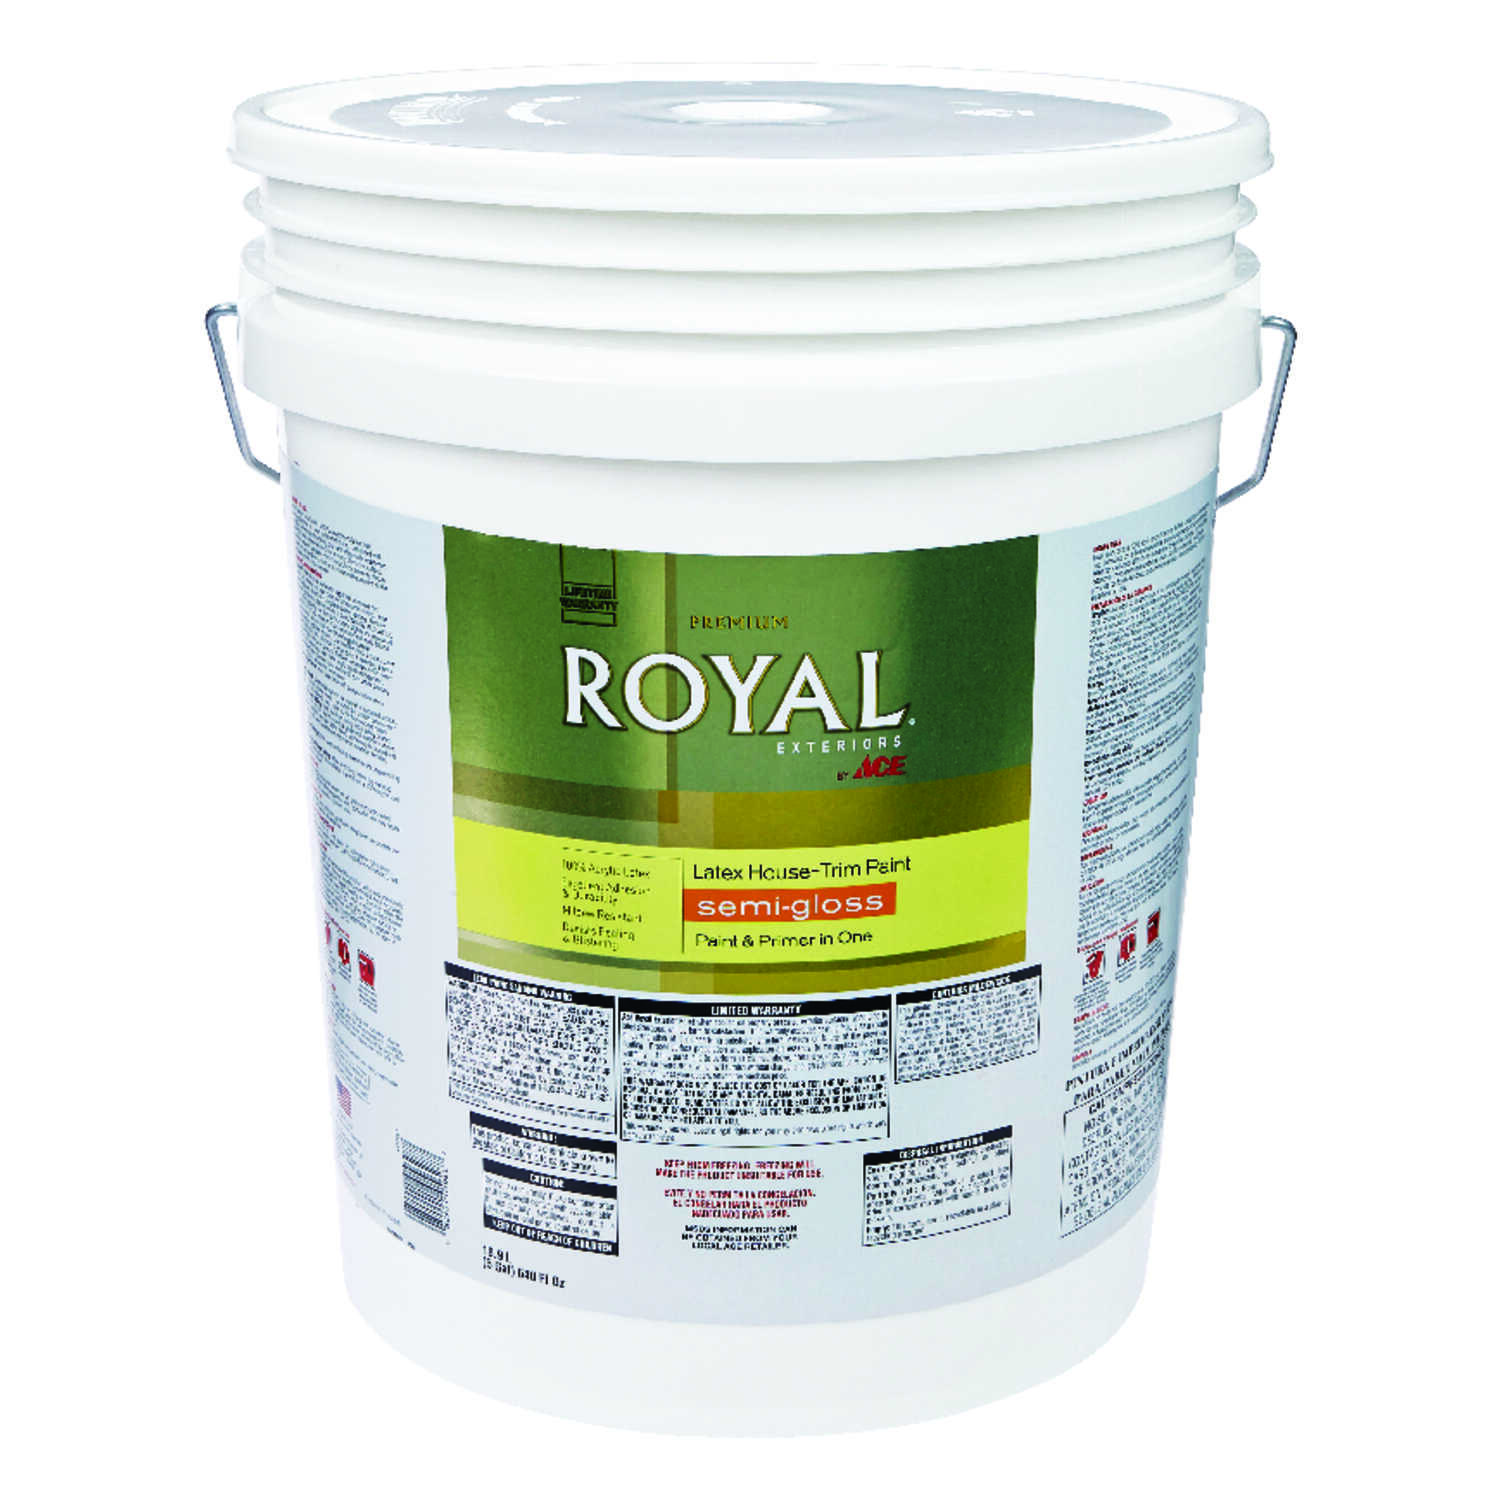 Ace  Royal  Semi-Gloss  Ultra White  Acrylic Latex  House & Trim Paint & Primer  5 gal.